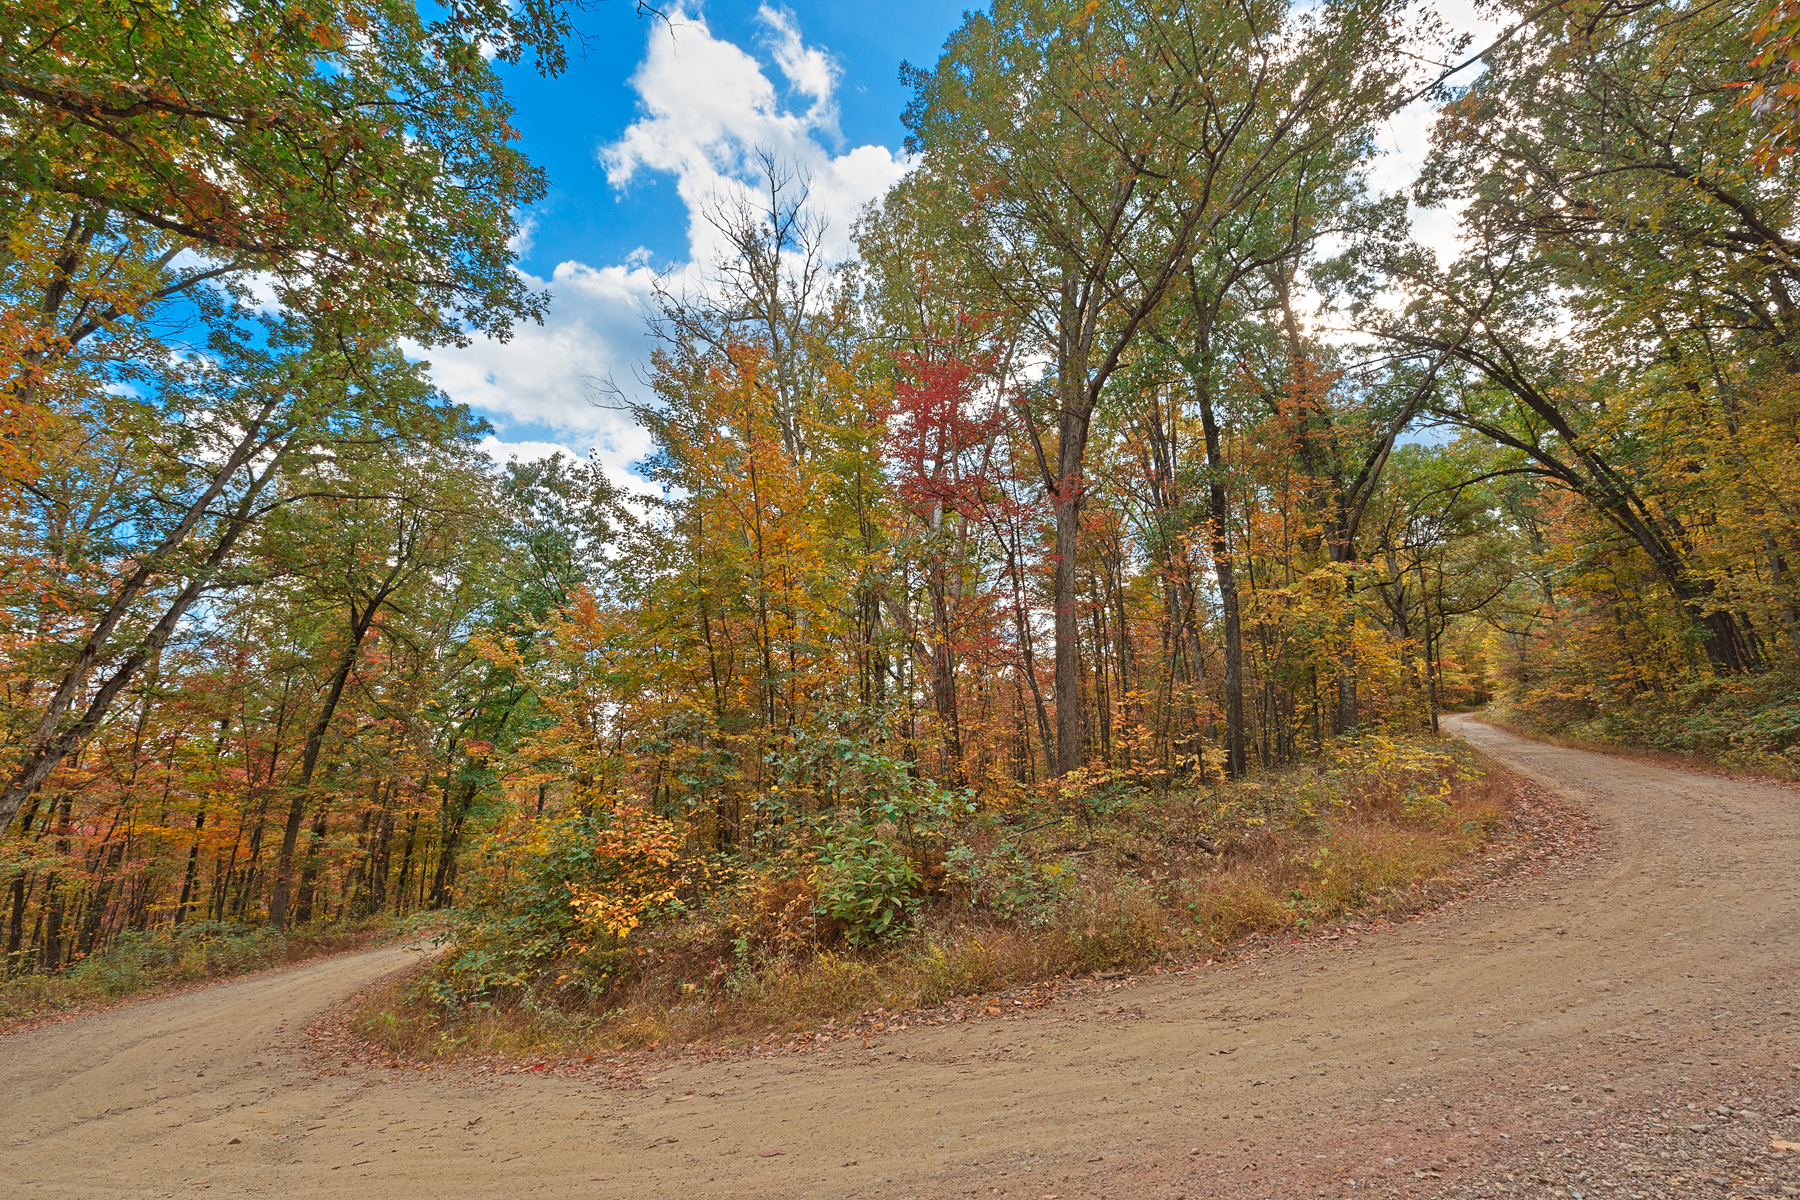 Winding autumn forest road  - hdr photo